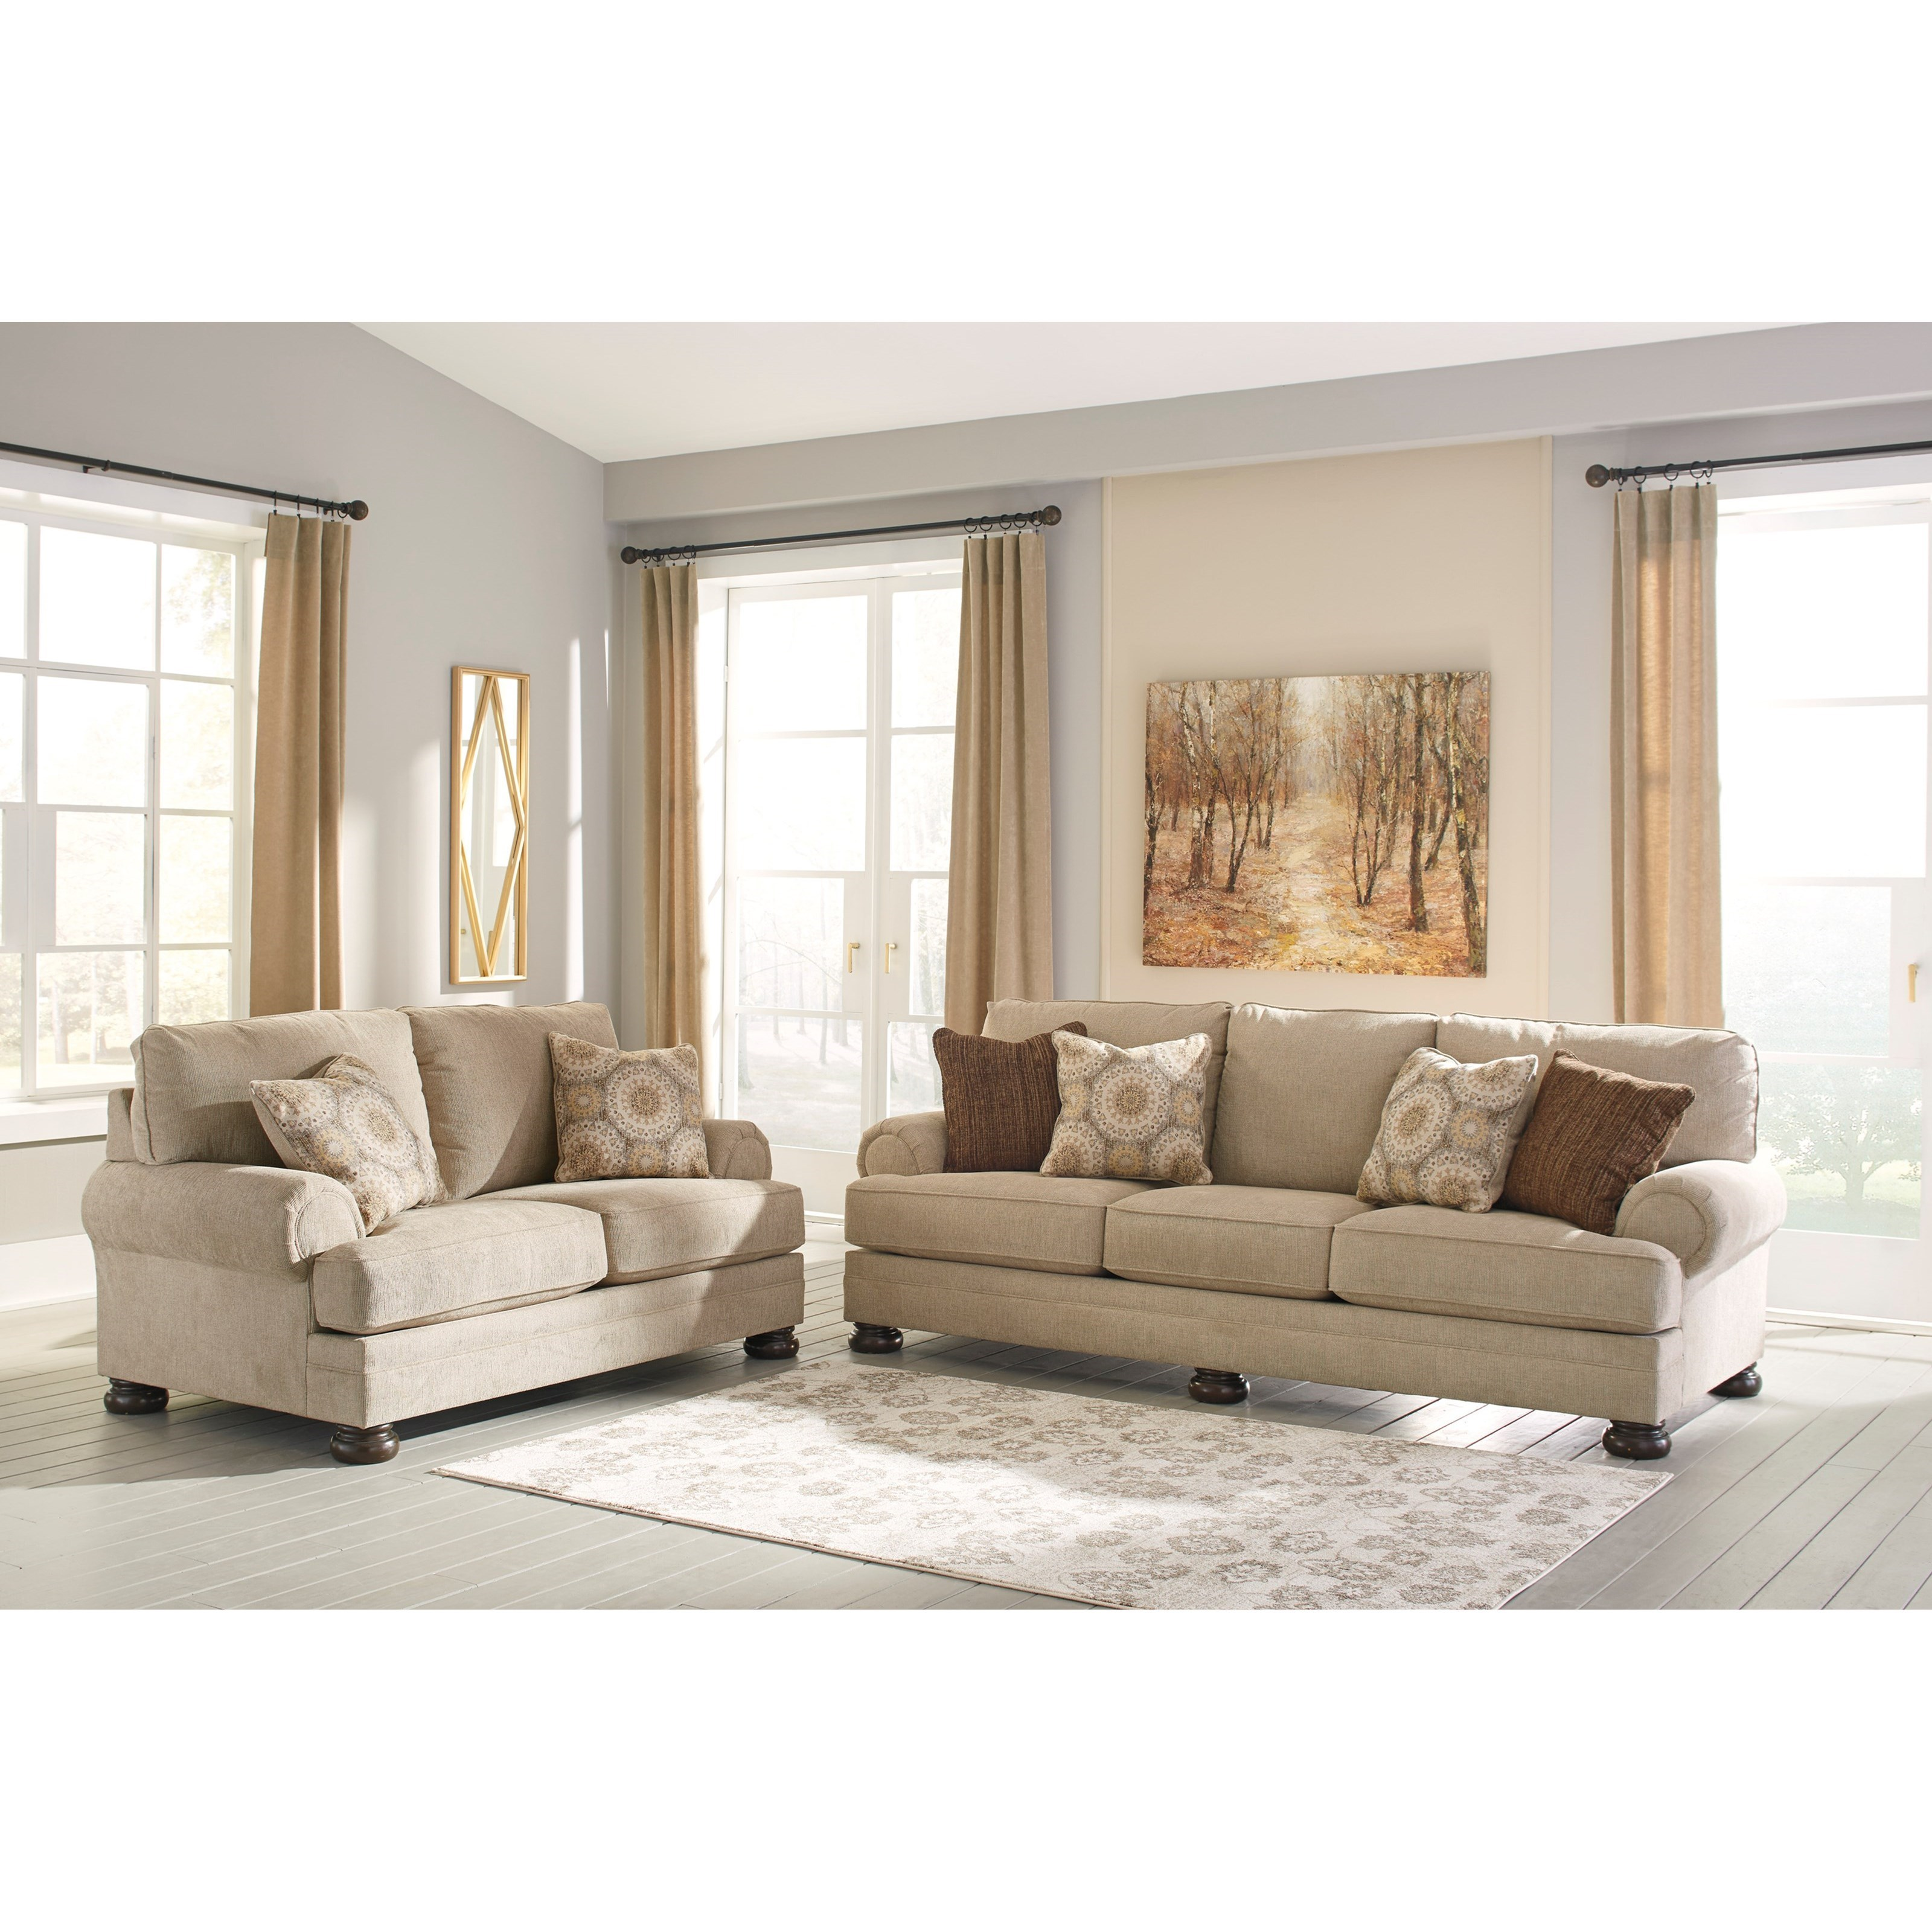 Benchcraft Quarry Hill Stationary Living Room Group - Item Number: 38701 Living Room Group 1